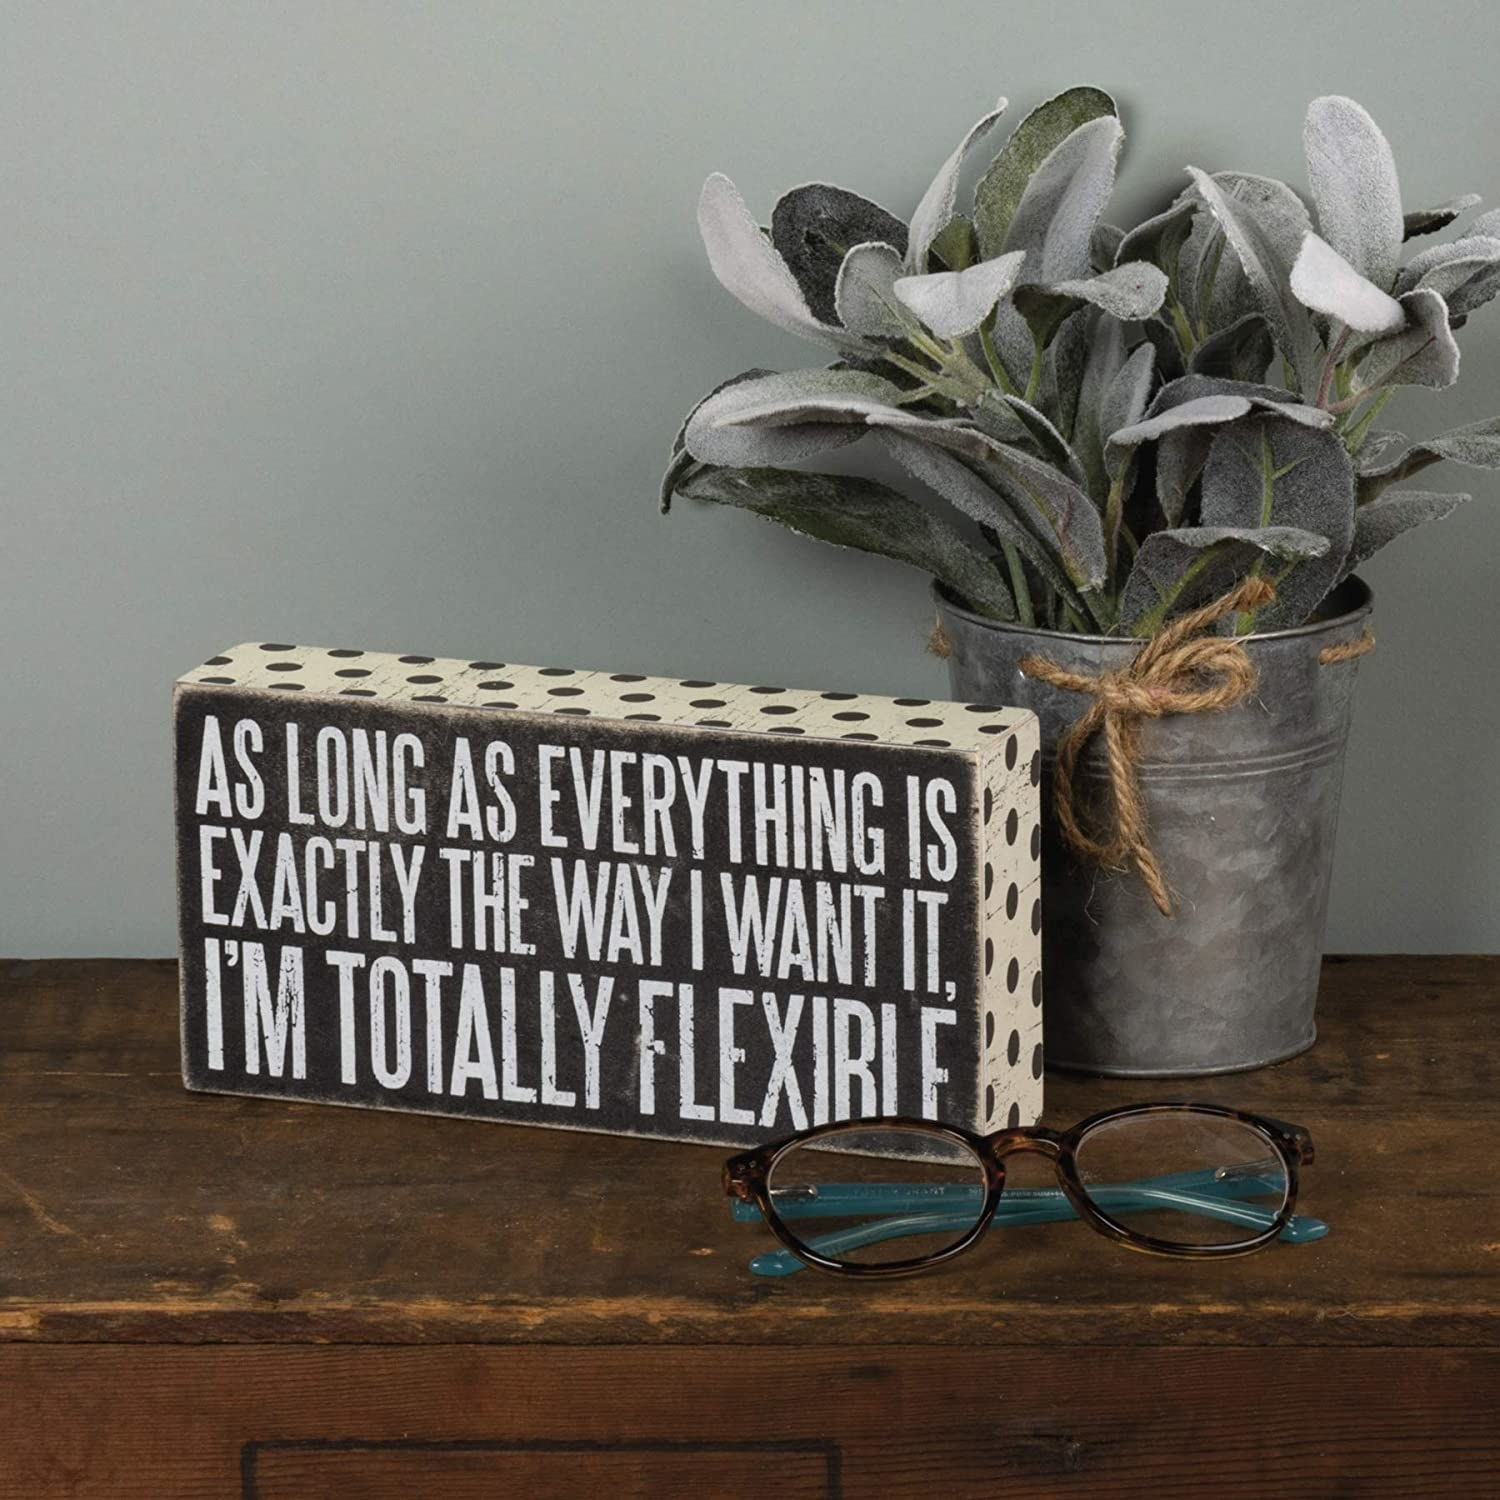 wooden sign that says as long as everything is exactly the way i want it, i'm totally flexible